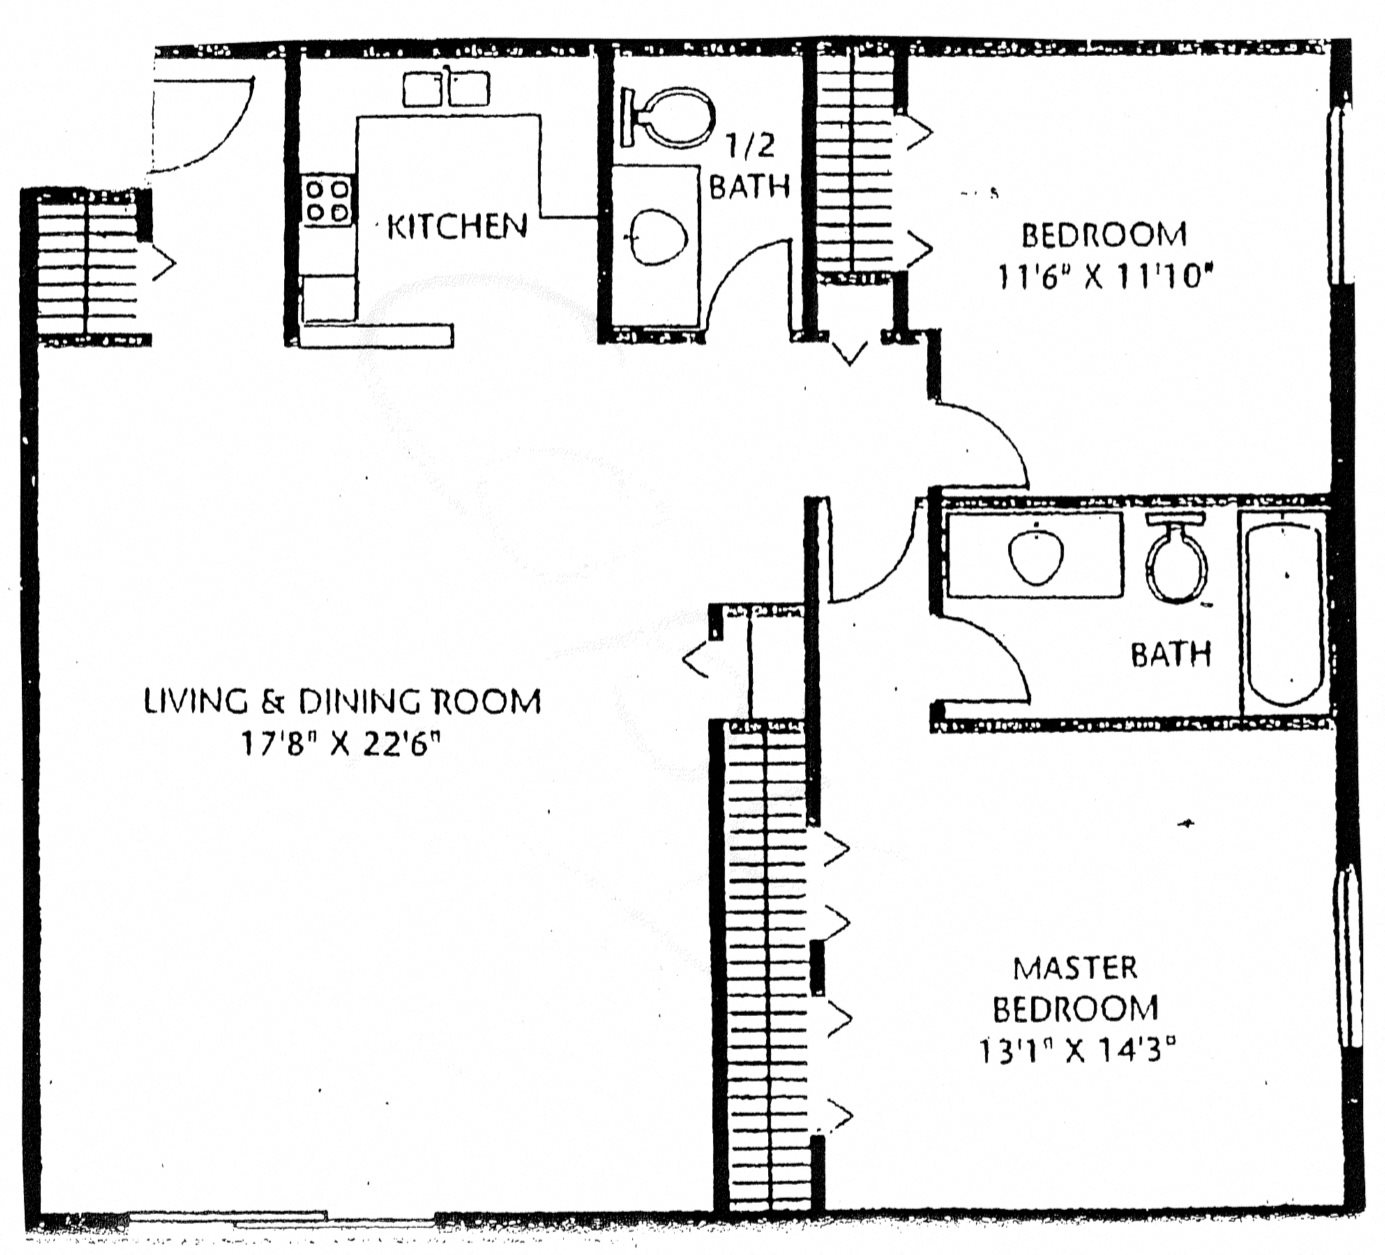 Floor plans of willow lake apartments in lombard il for 3 bedroom apartments in lake county il